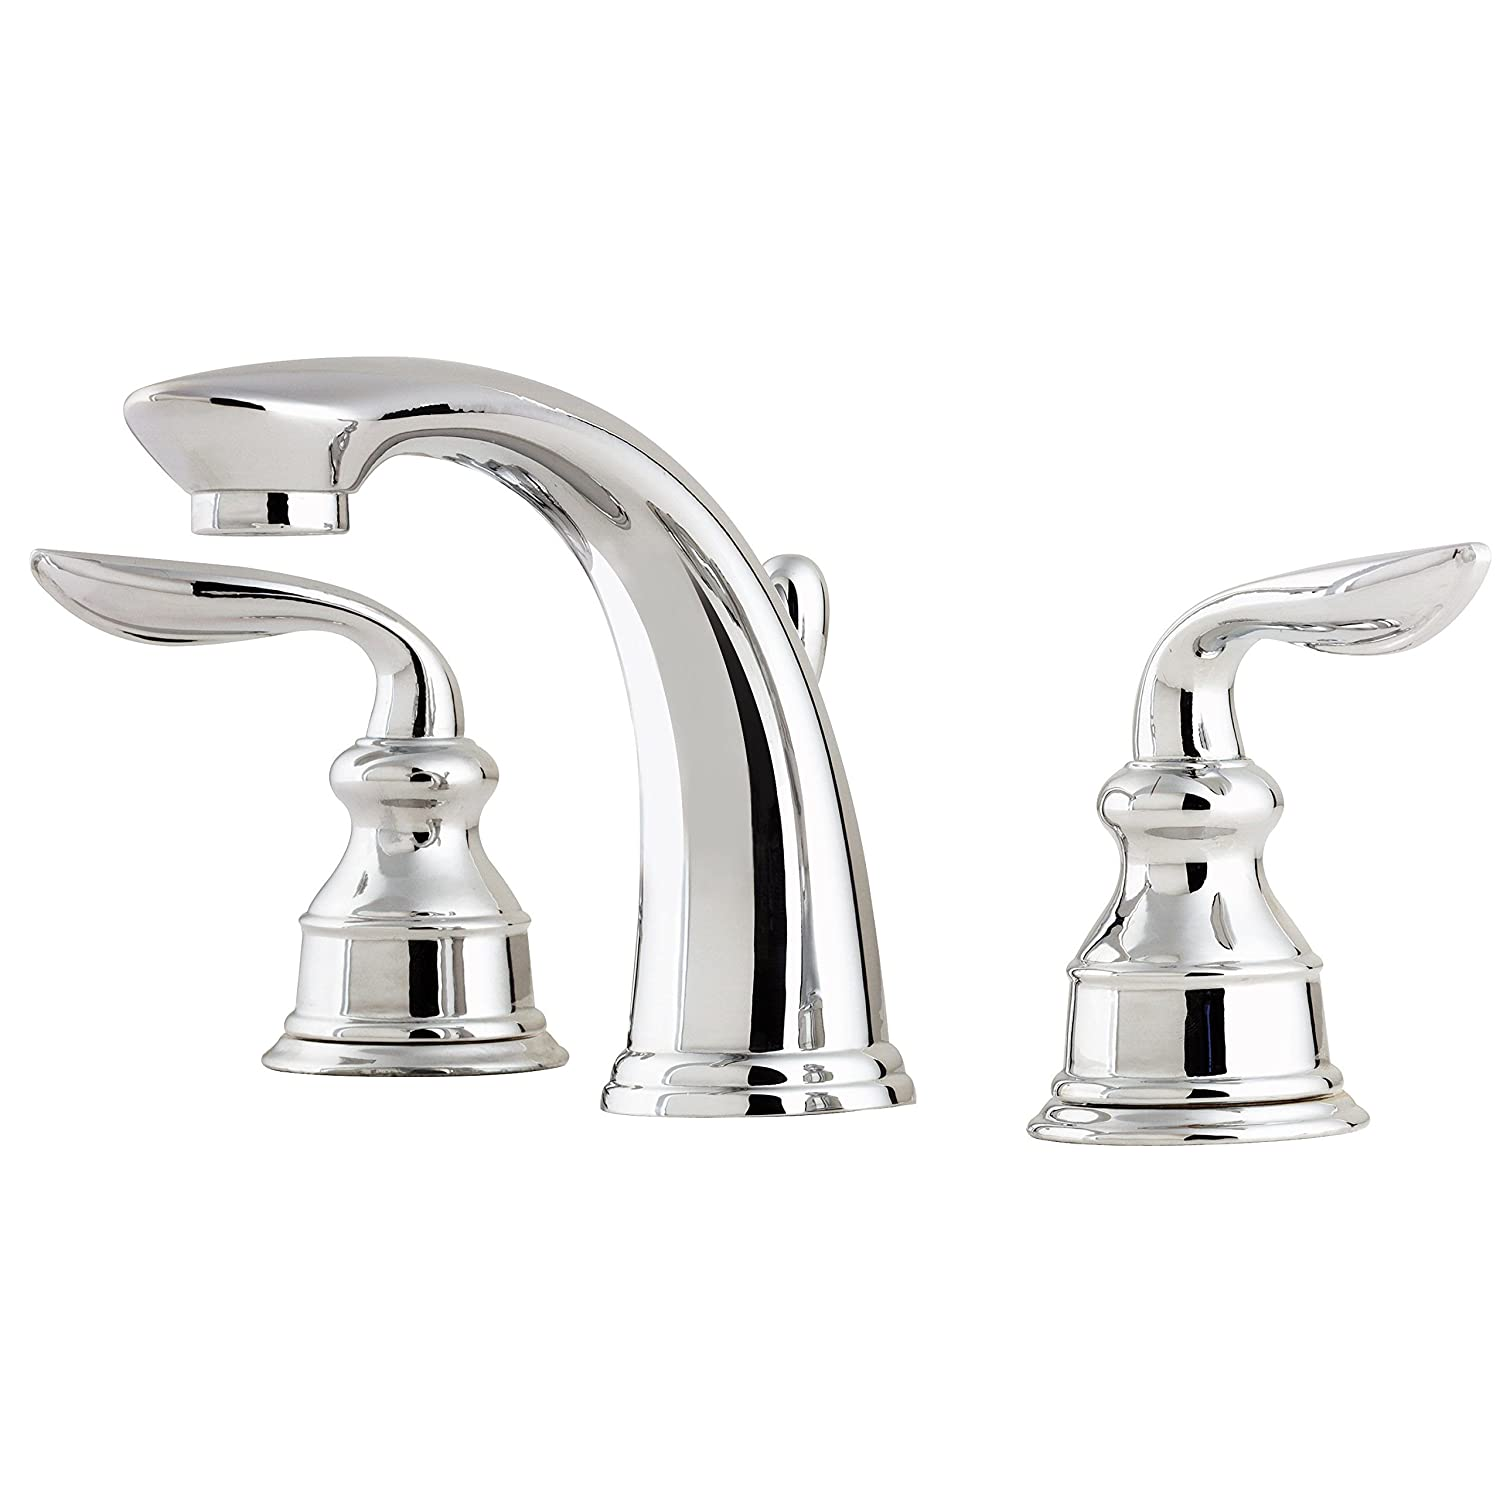 Pfister FM49CBYY Avalon 2-Handle 8 Inch Widespread Bathroom Faucet ...